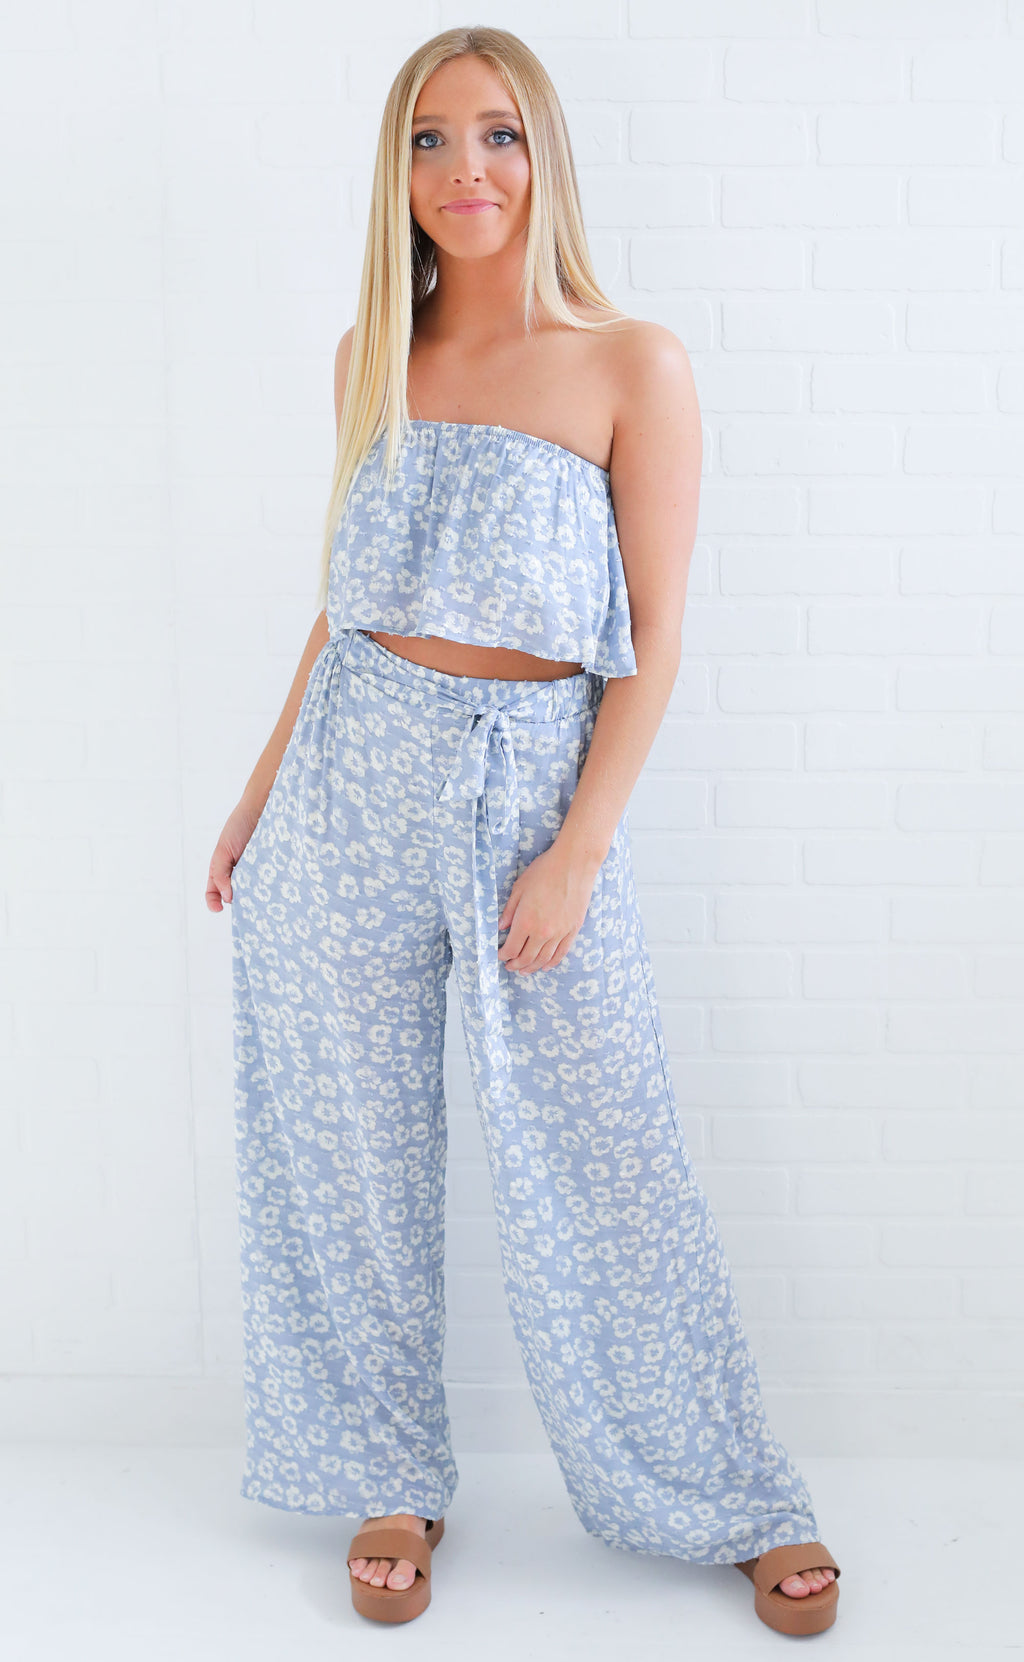 best buds two piece set - blue